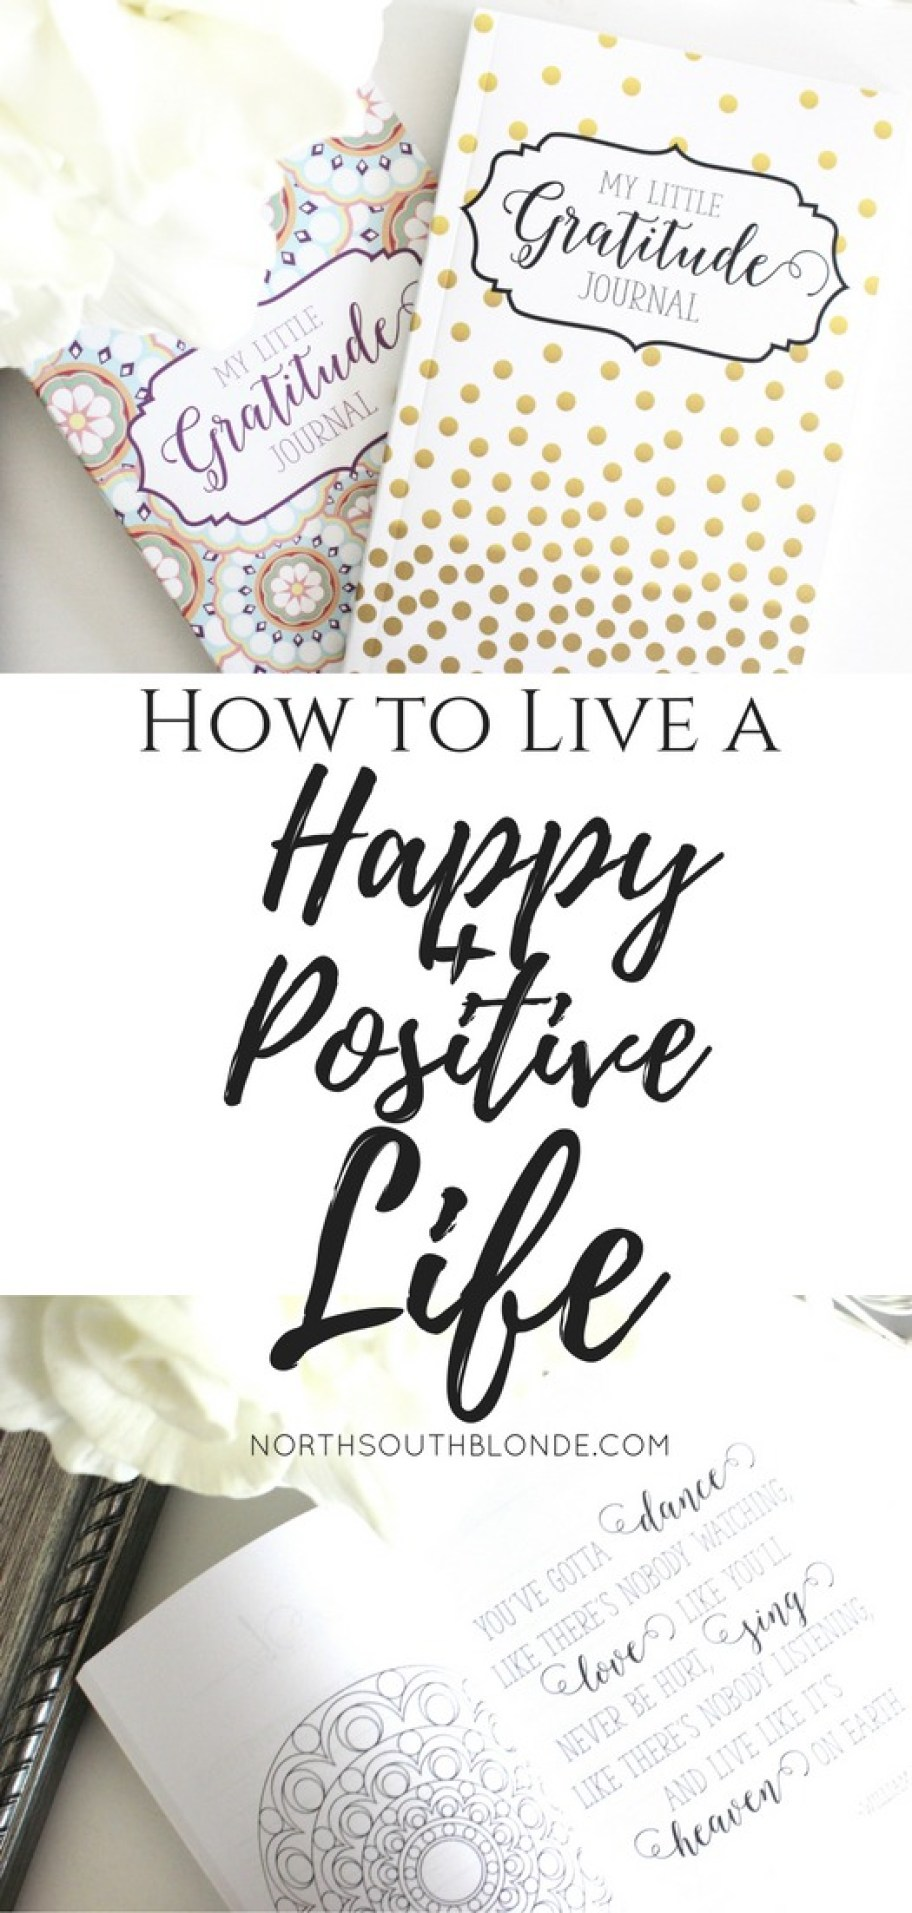 How to Live a Happy and Positive Life